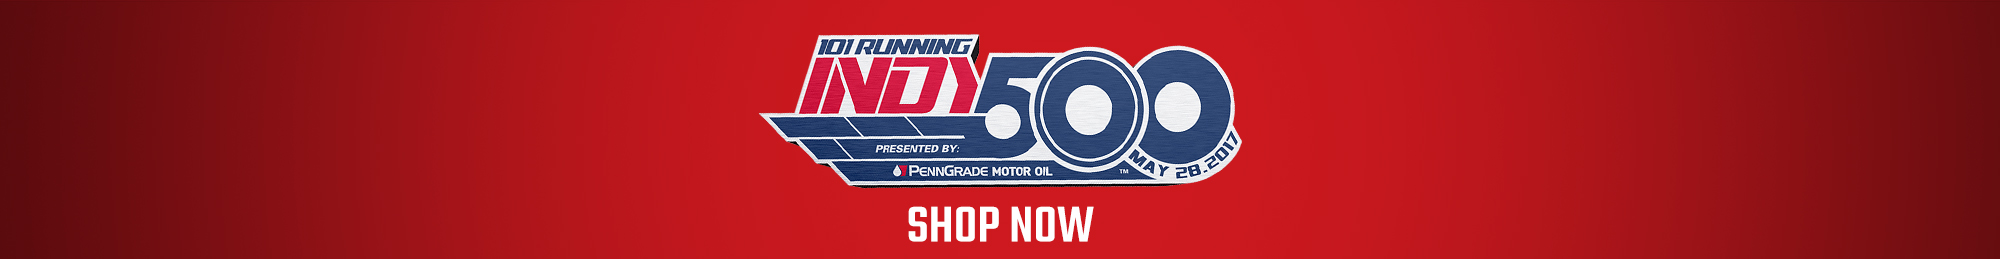 indy500-category-banner-small.jpg